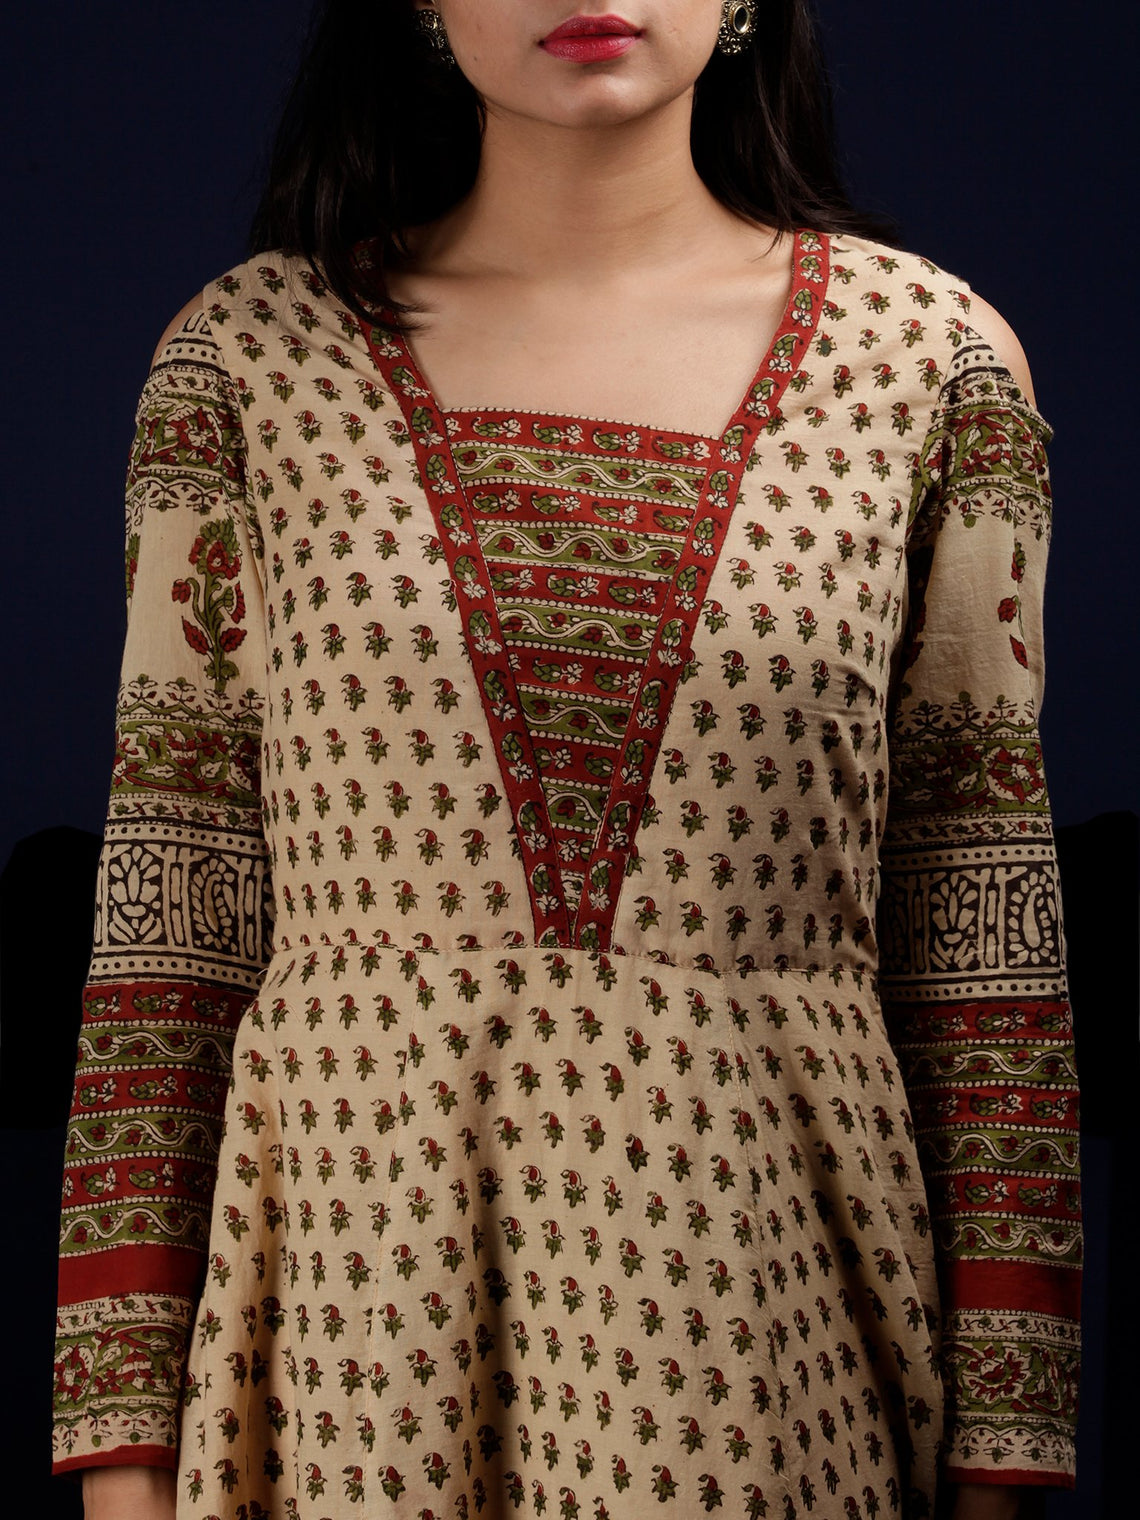 Naaz Kainaz - Beige Maroon Green Black Hand Block Printed Long Cotton Dress With Cold Shoulder Sleeves - DS62F001